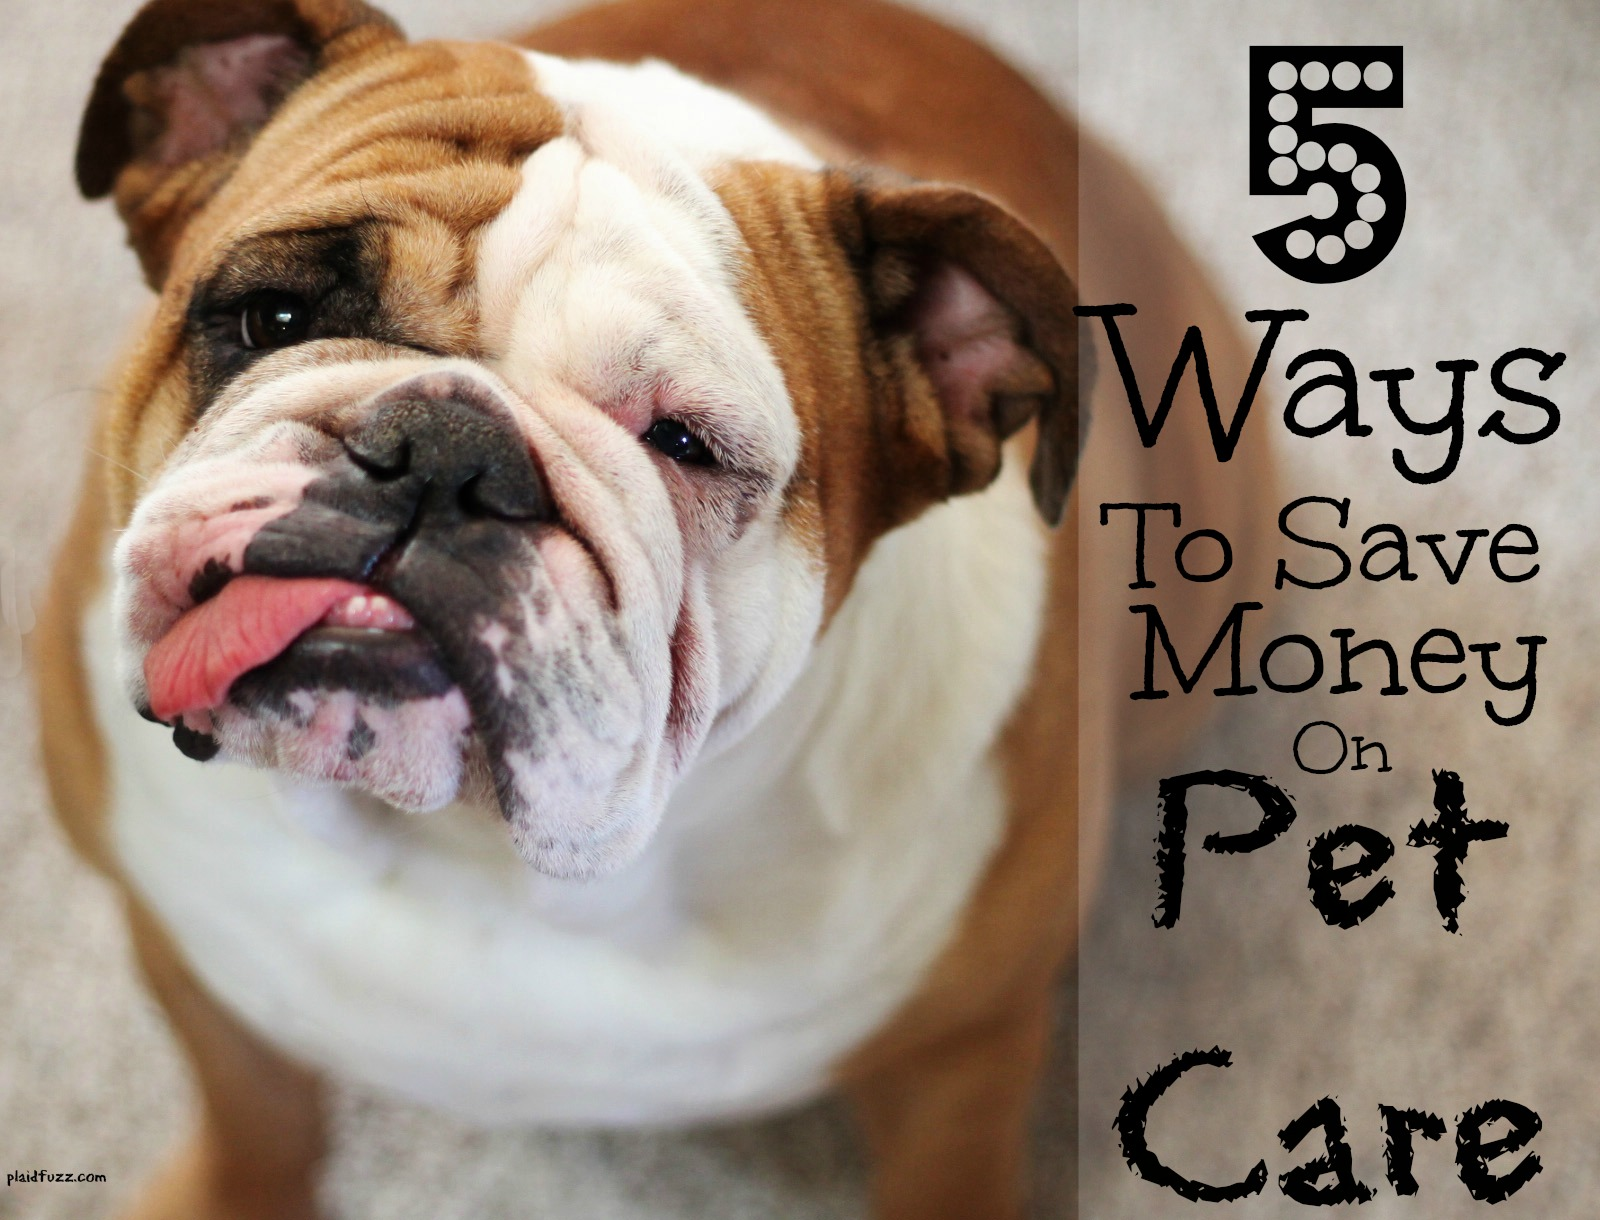 5 Ways To Save Money On Pet Care